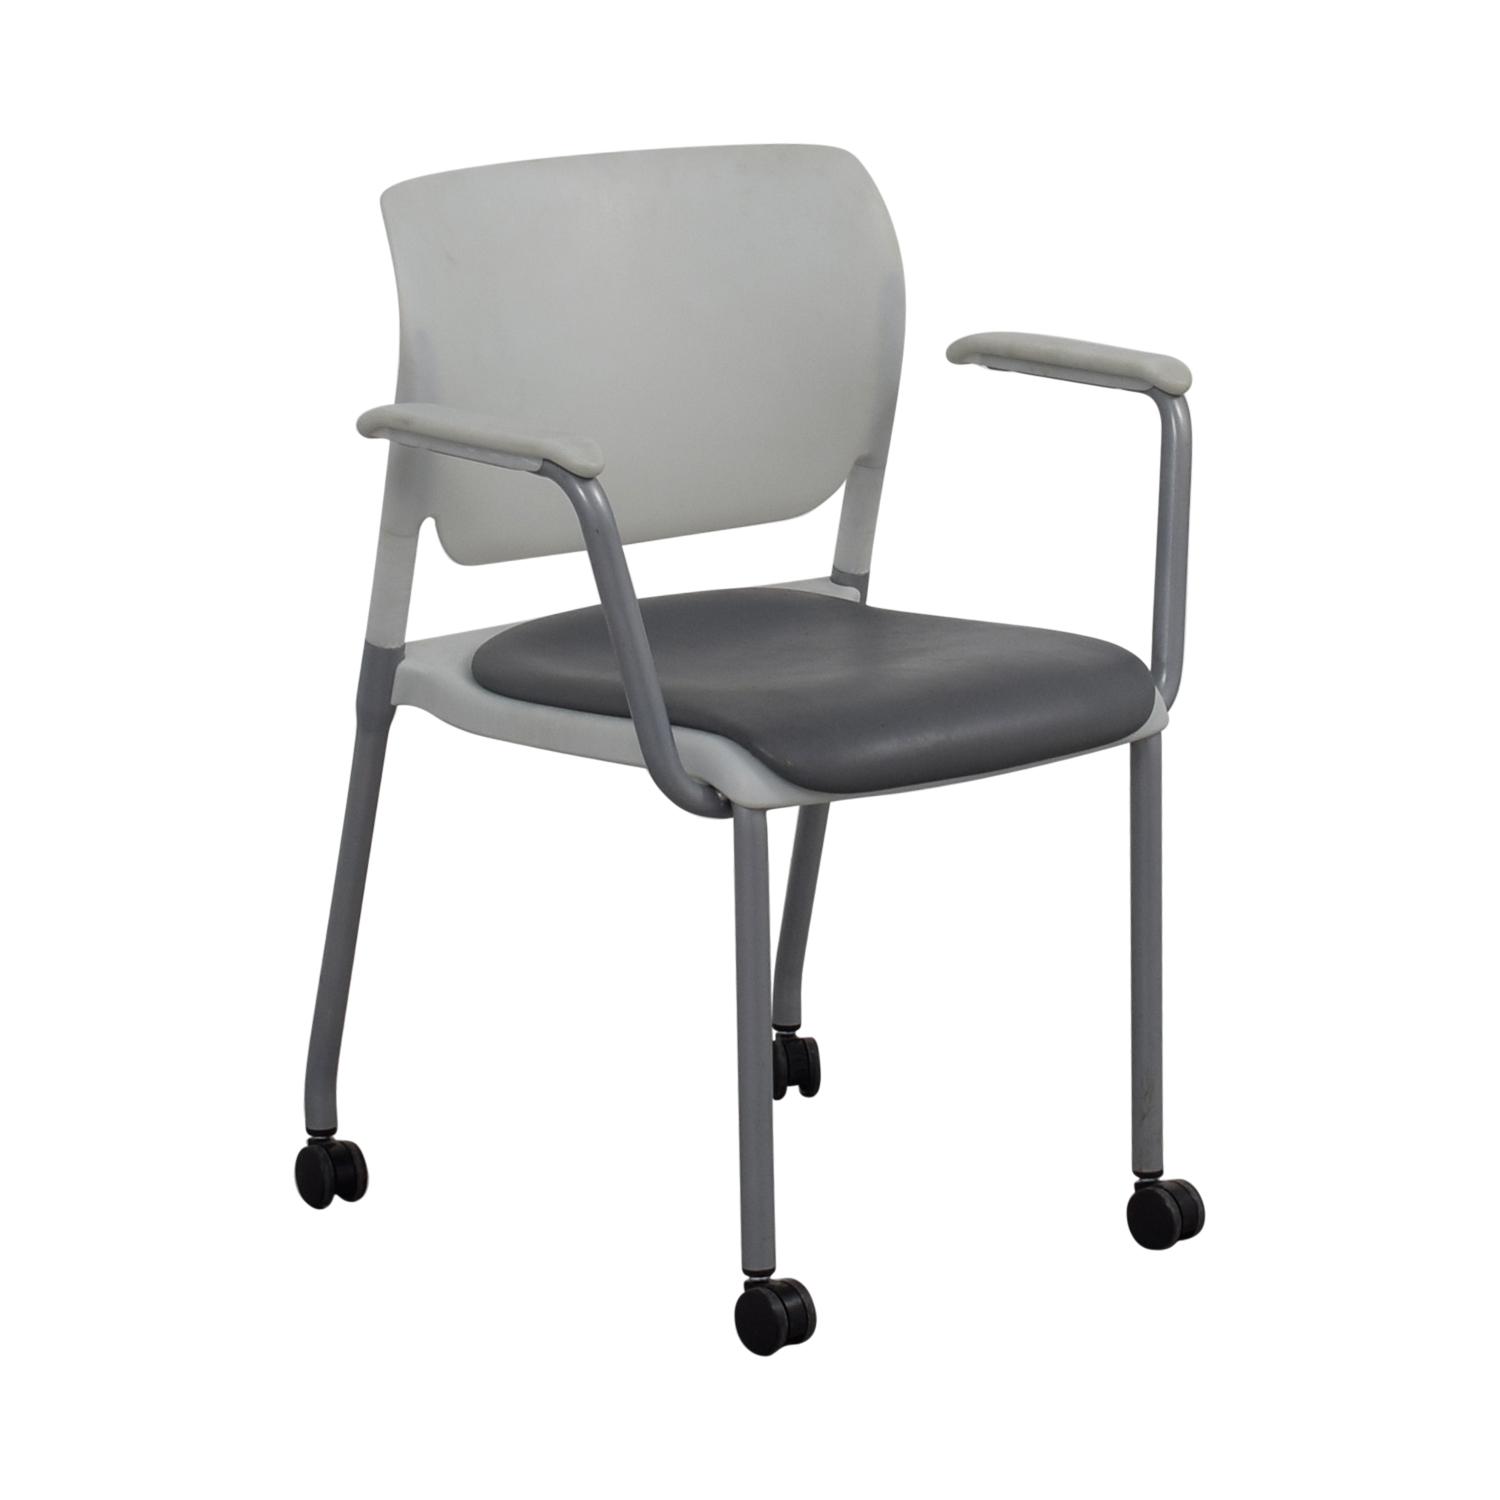 Grey Side Chair 90 Off Sitonit Sitonit White And Grey Side Chair On